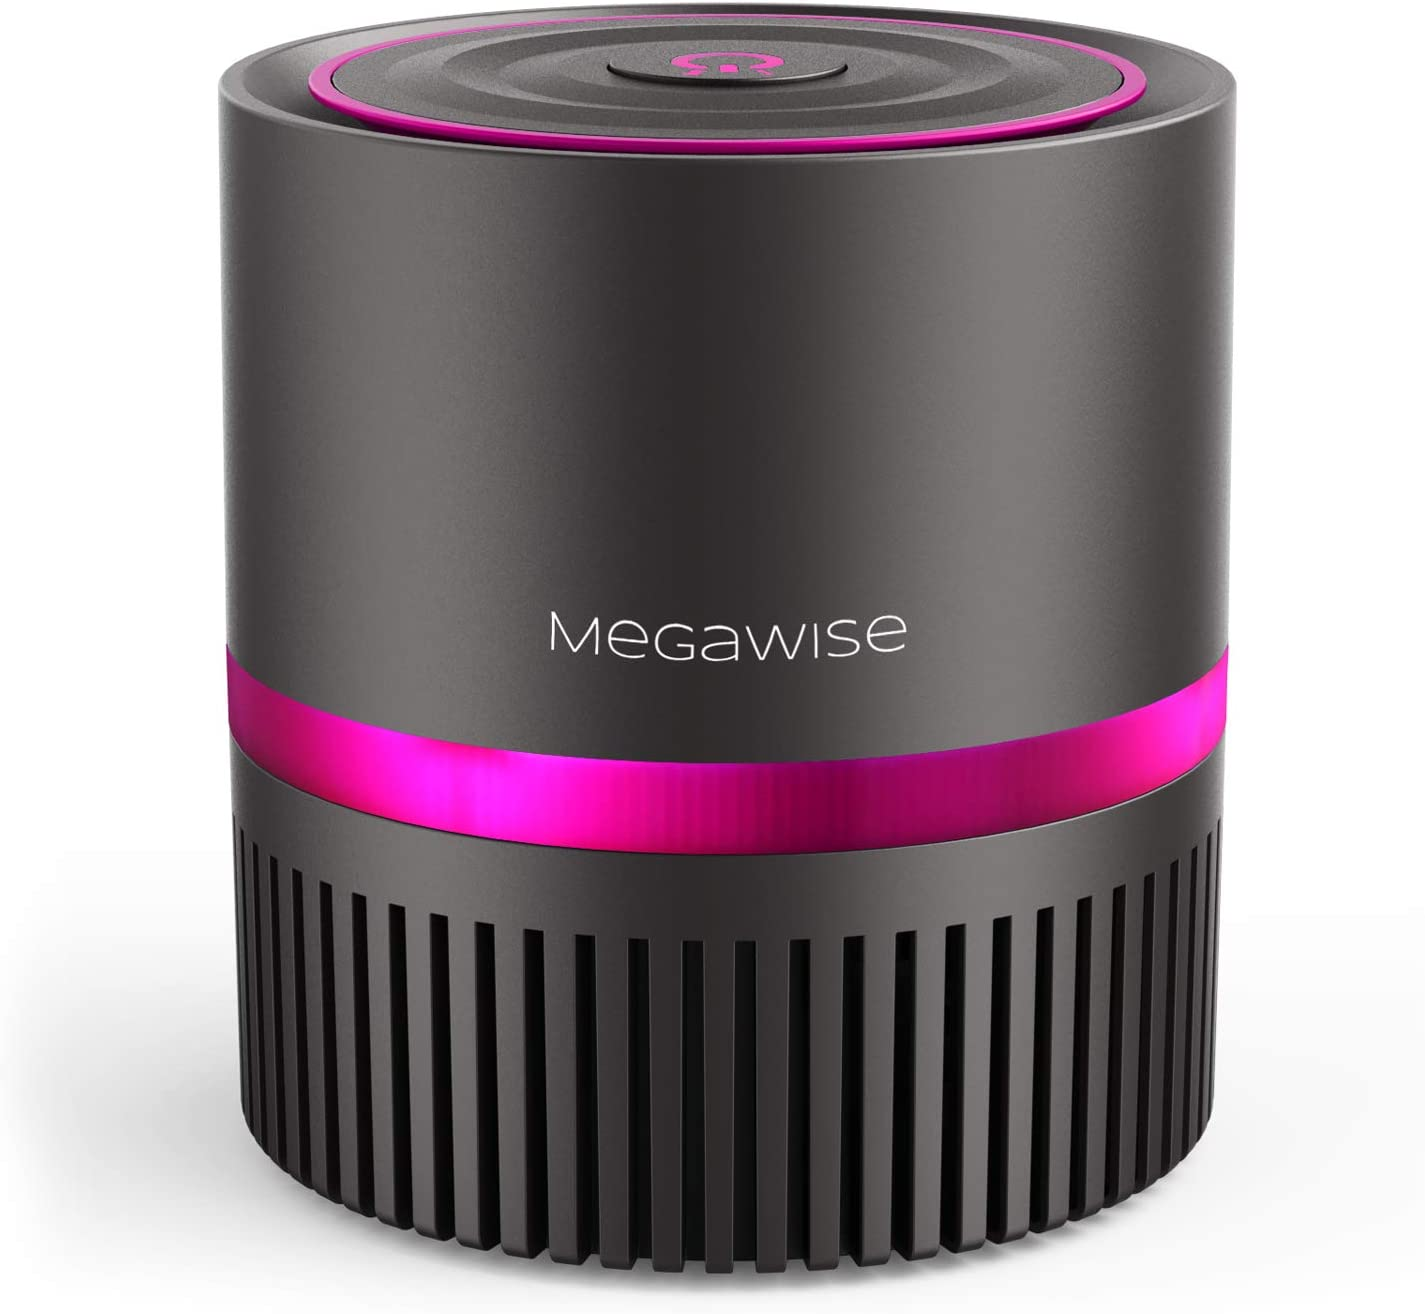 MEGAWISE Desktop Air Purifier for Home, Office and Bedroom, True HEPA Filter Air Cleaner With Optional Night Light for Allergies and Pets, Smoke, Dust, Mold, and Pollen, Available for California.